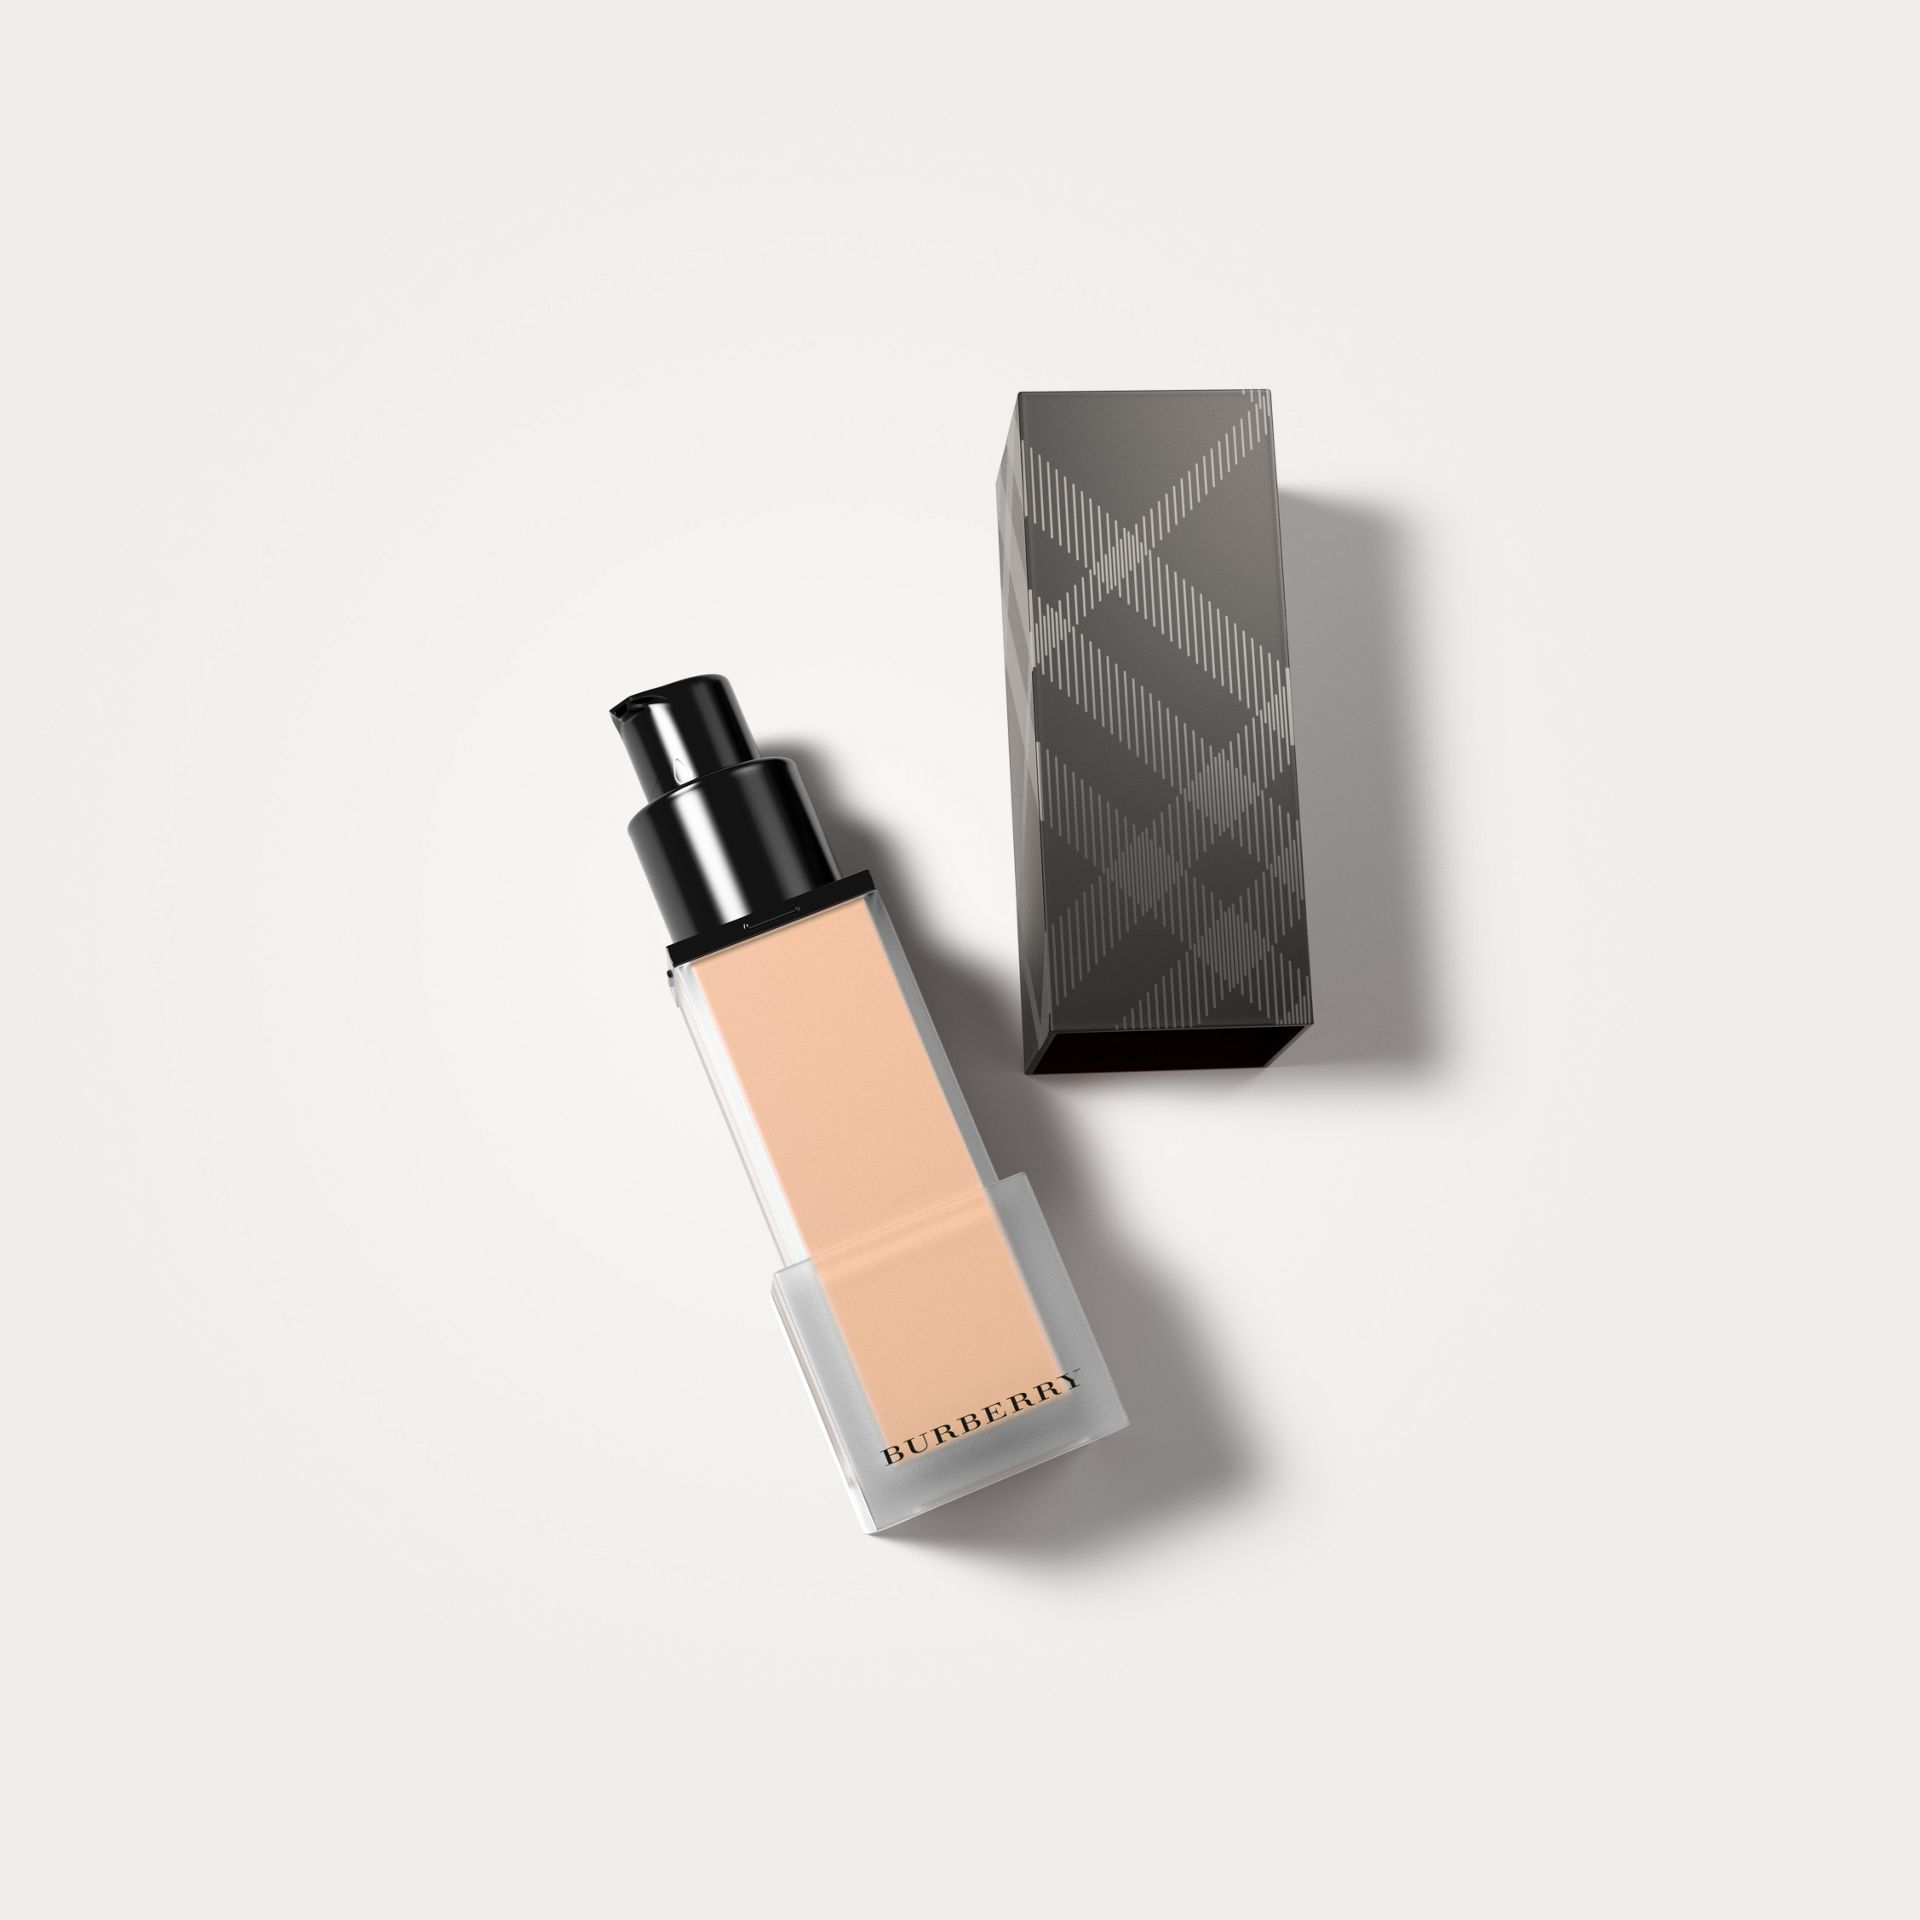 Warm nude 34 Burberry Cashmere Sunscreen SPF 20 – Warm Nude No.34 - gallery image 1